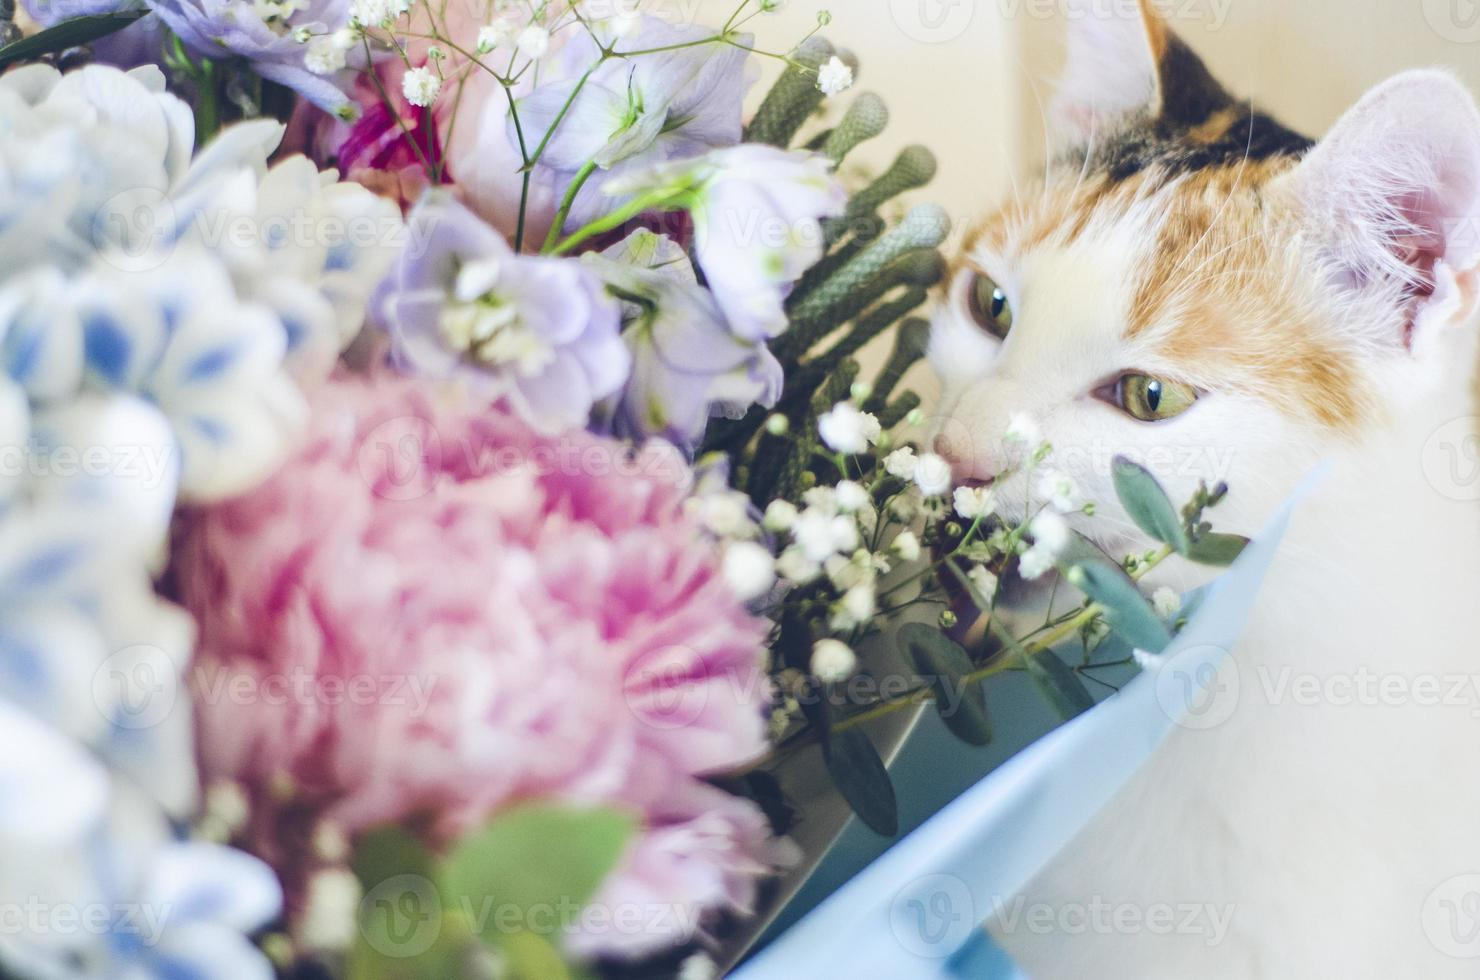 Tricolor domestic cat sniffing the flowers photo